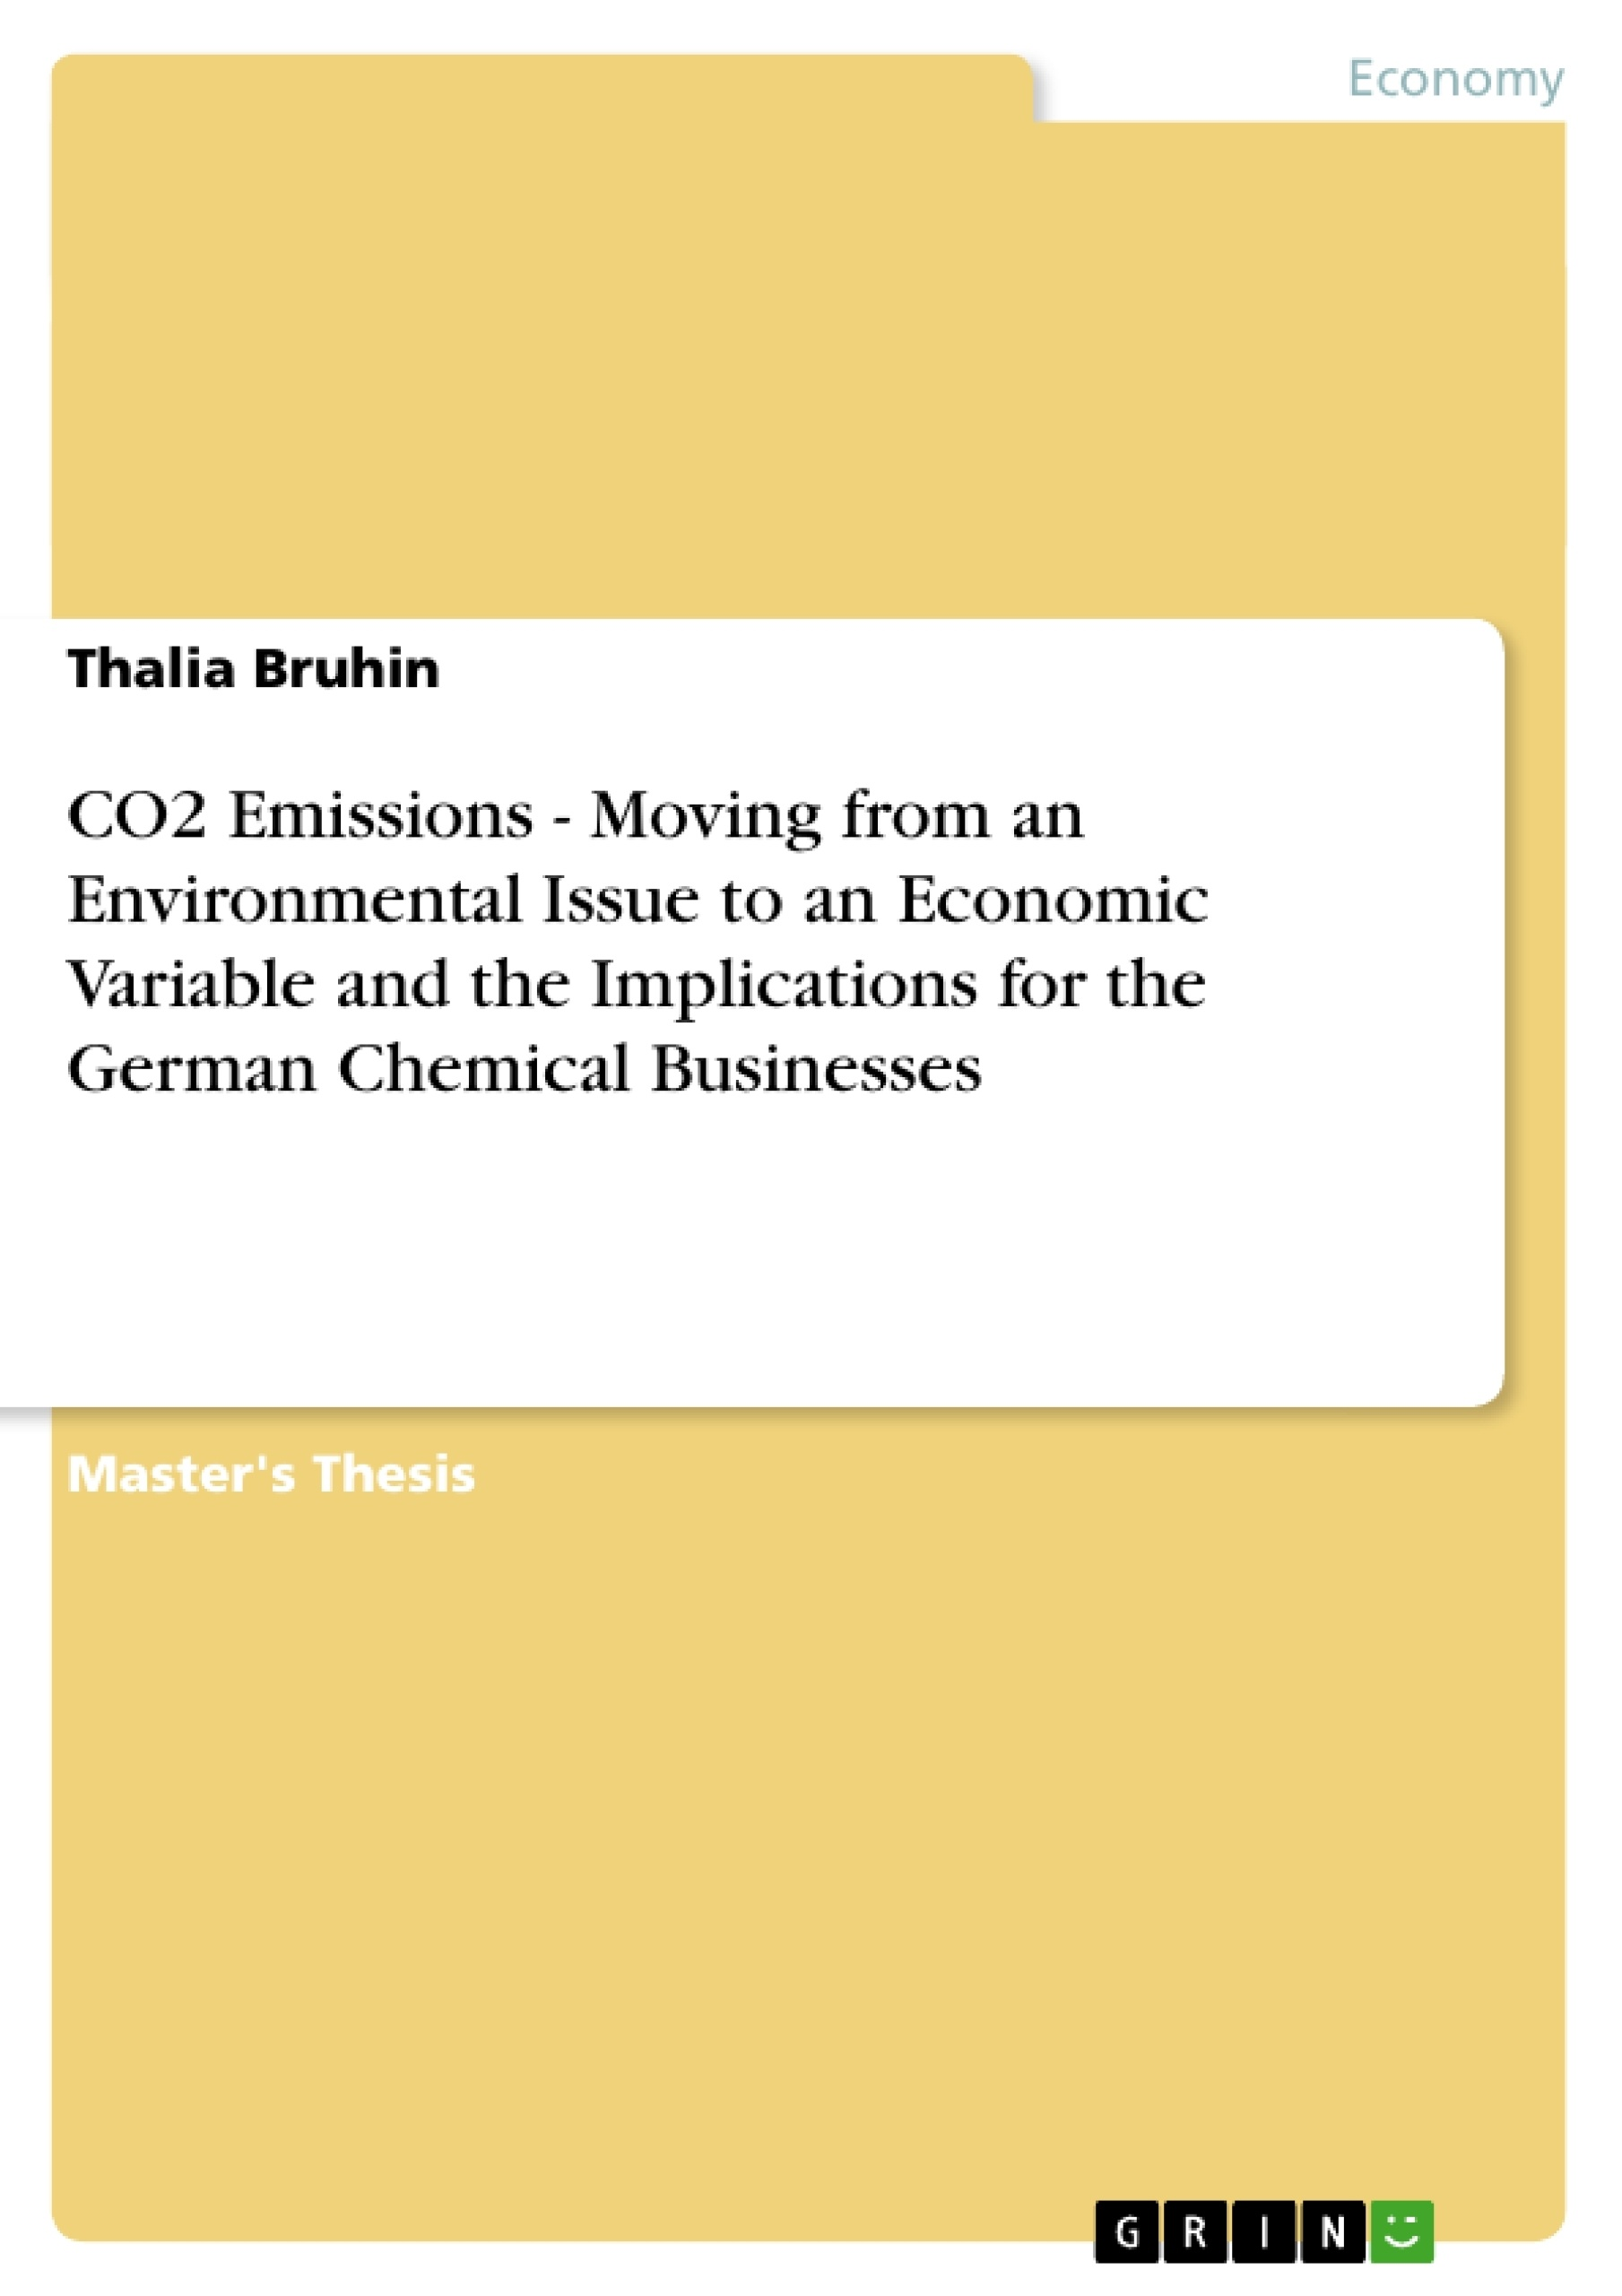 Title: CO2 Emissions - Moving from an Environmental Issue to an Economic Variable and the Implications for the German Chemical Businesses